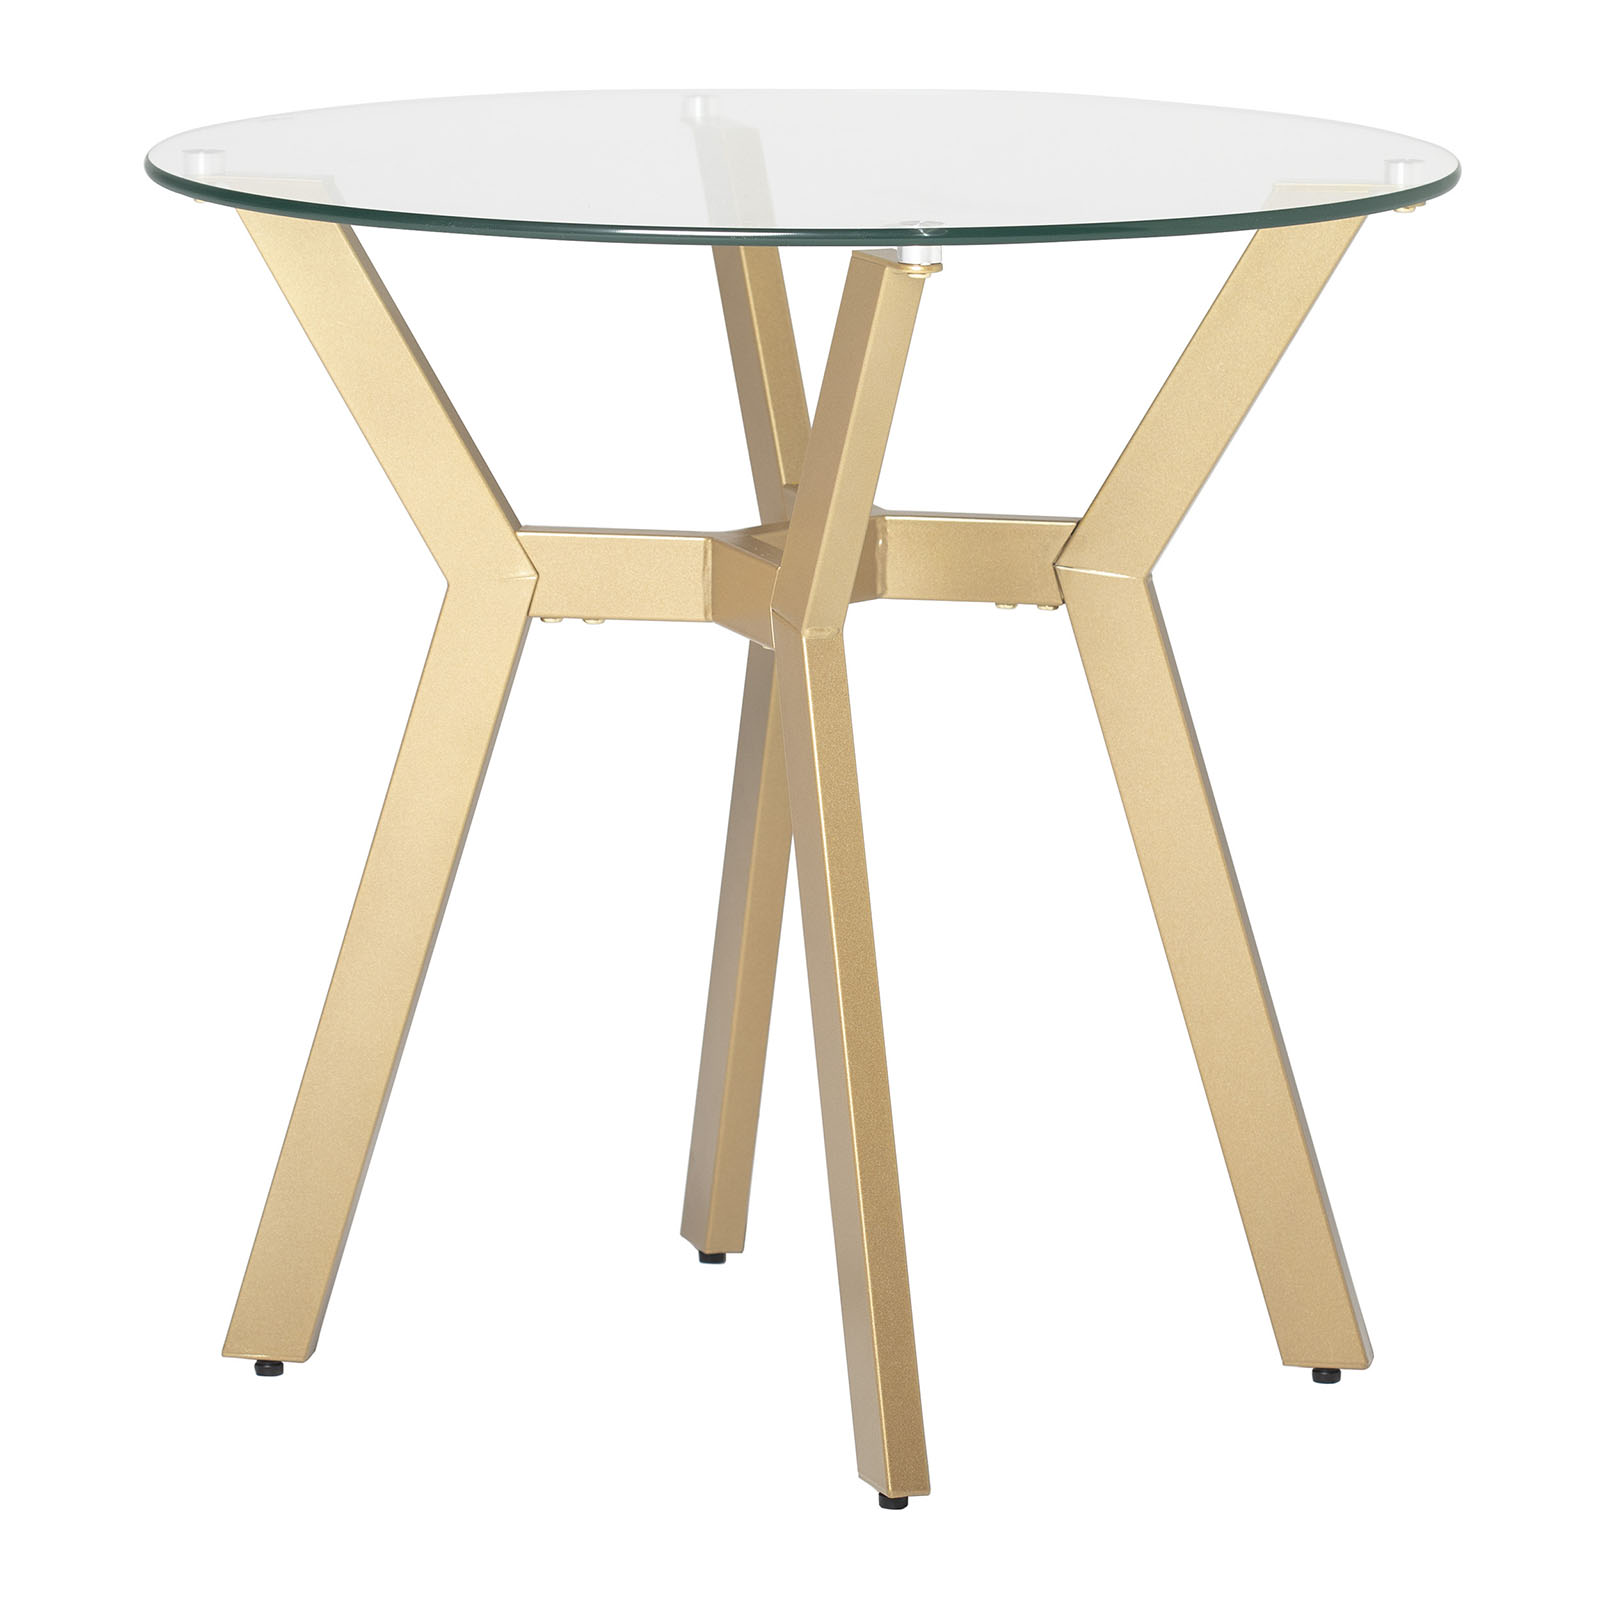 71040 ArchTech Round End Table rear